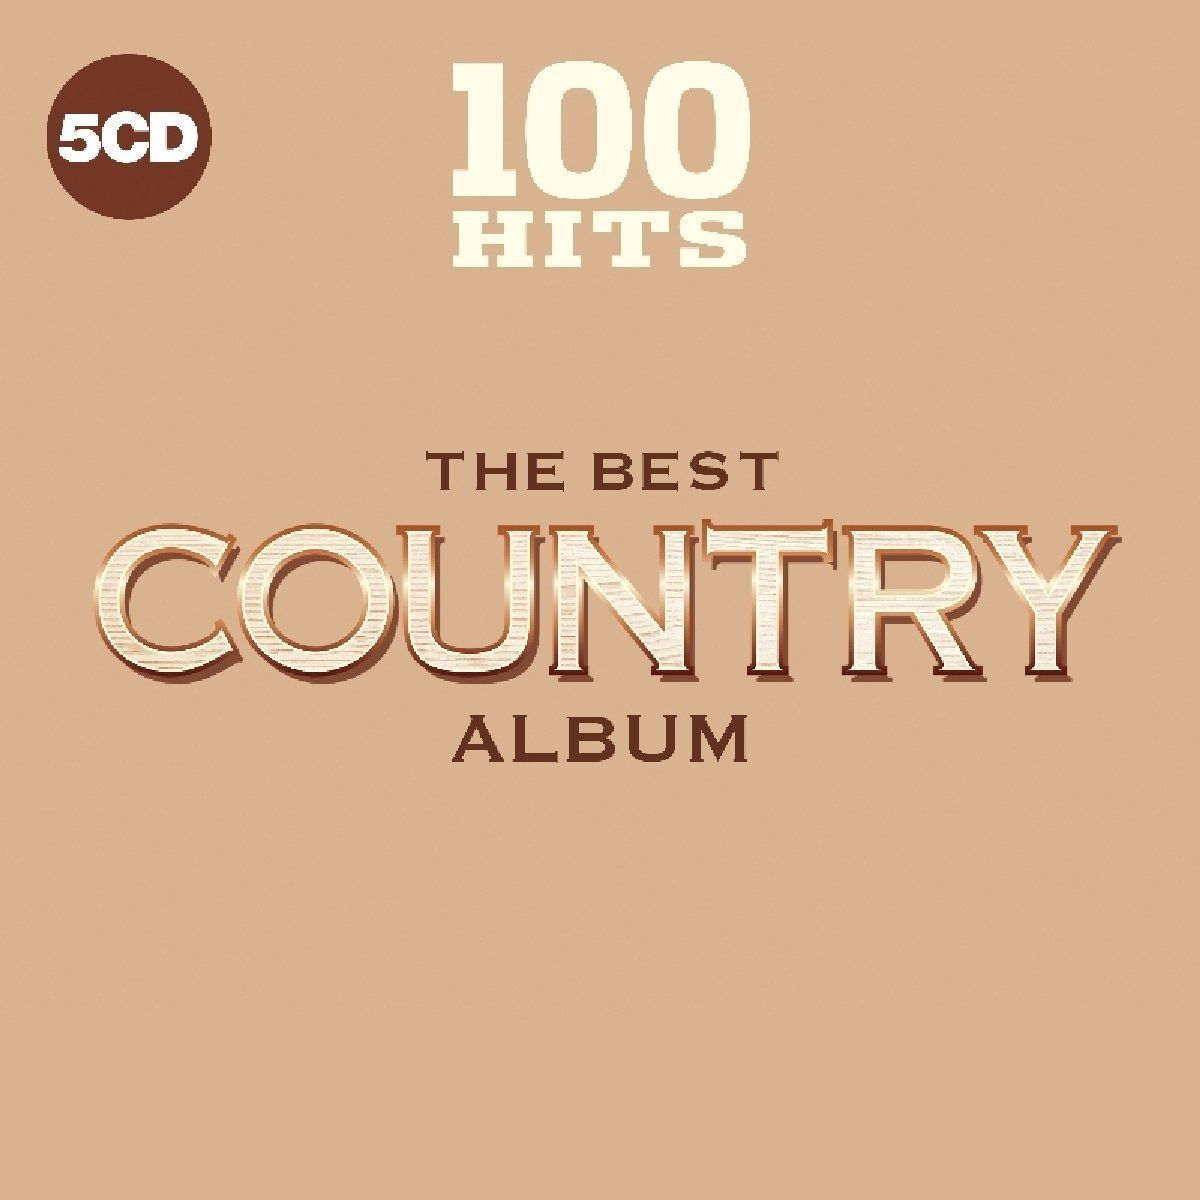 Download VA - 100 Hits: The Best Country Album (5CD, 2018) MP3 ...